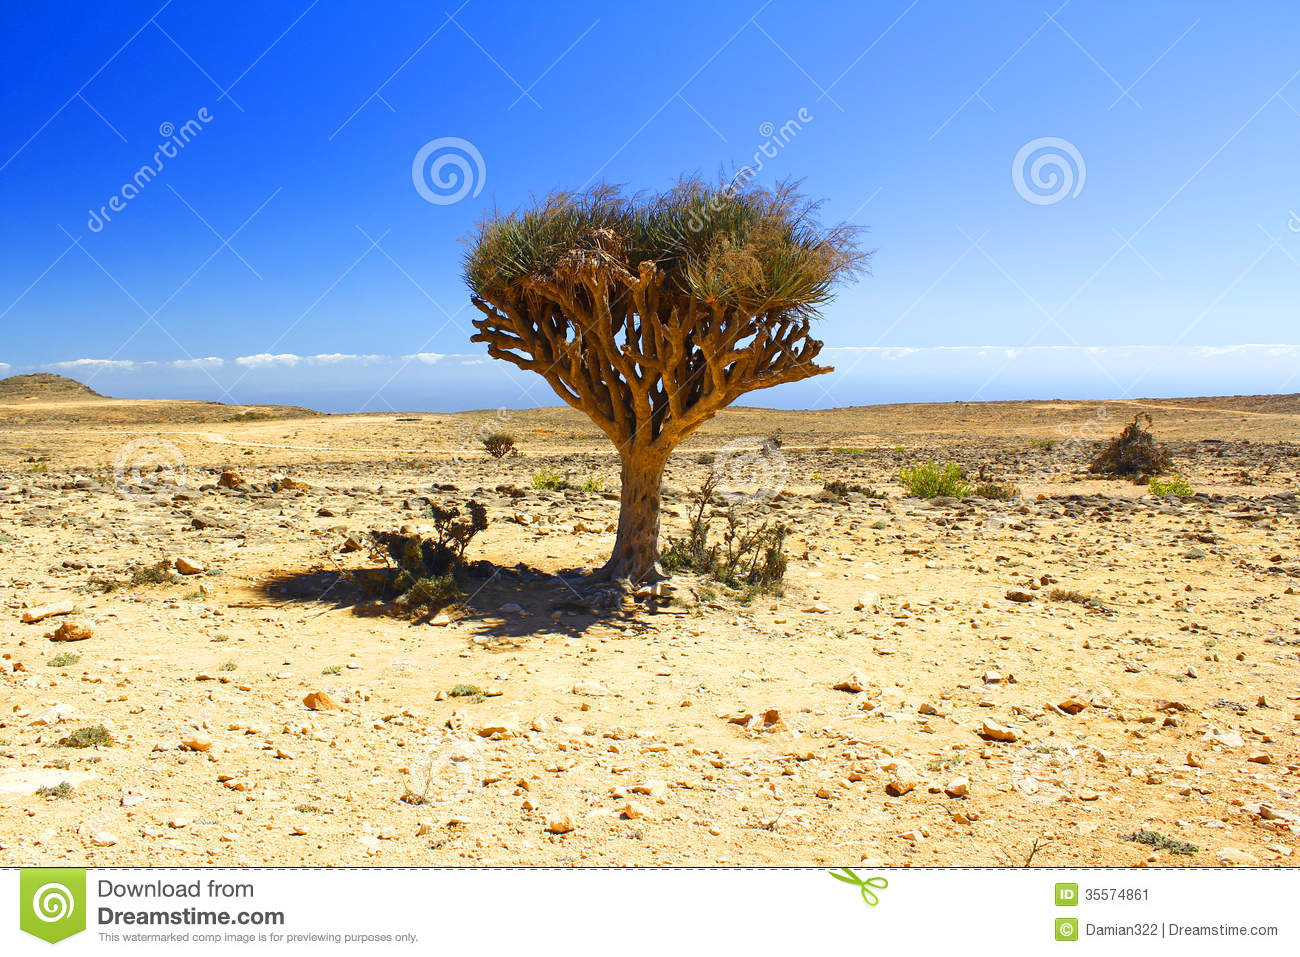 Lonely Tree clipart #19, Download drawings